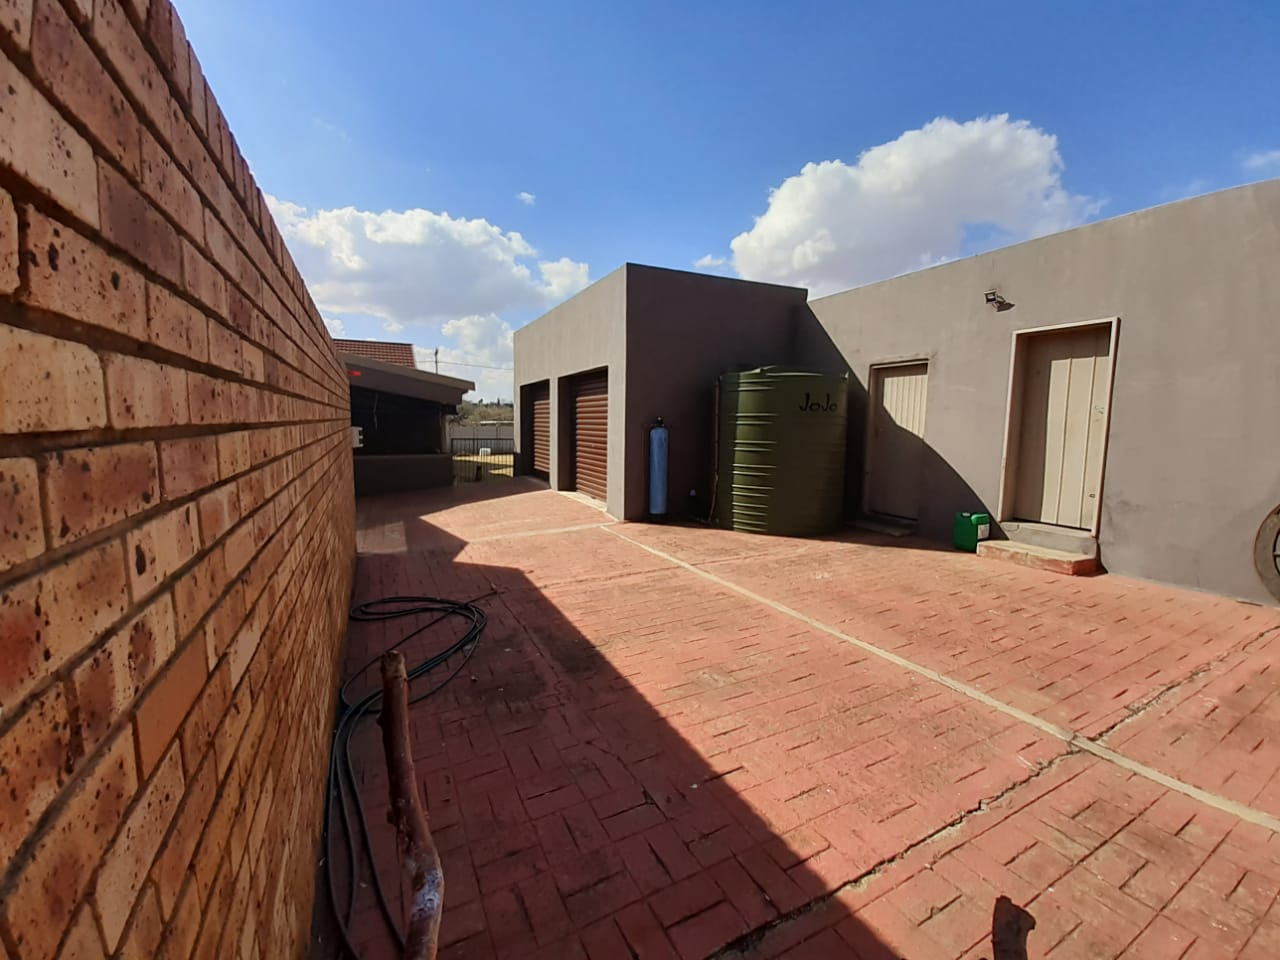 House in Parys - WhatsApp Image 2021-07-15 at 14.03.52.jpeg